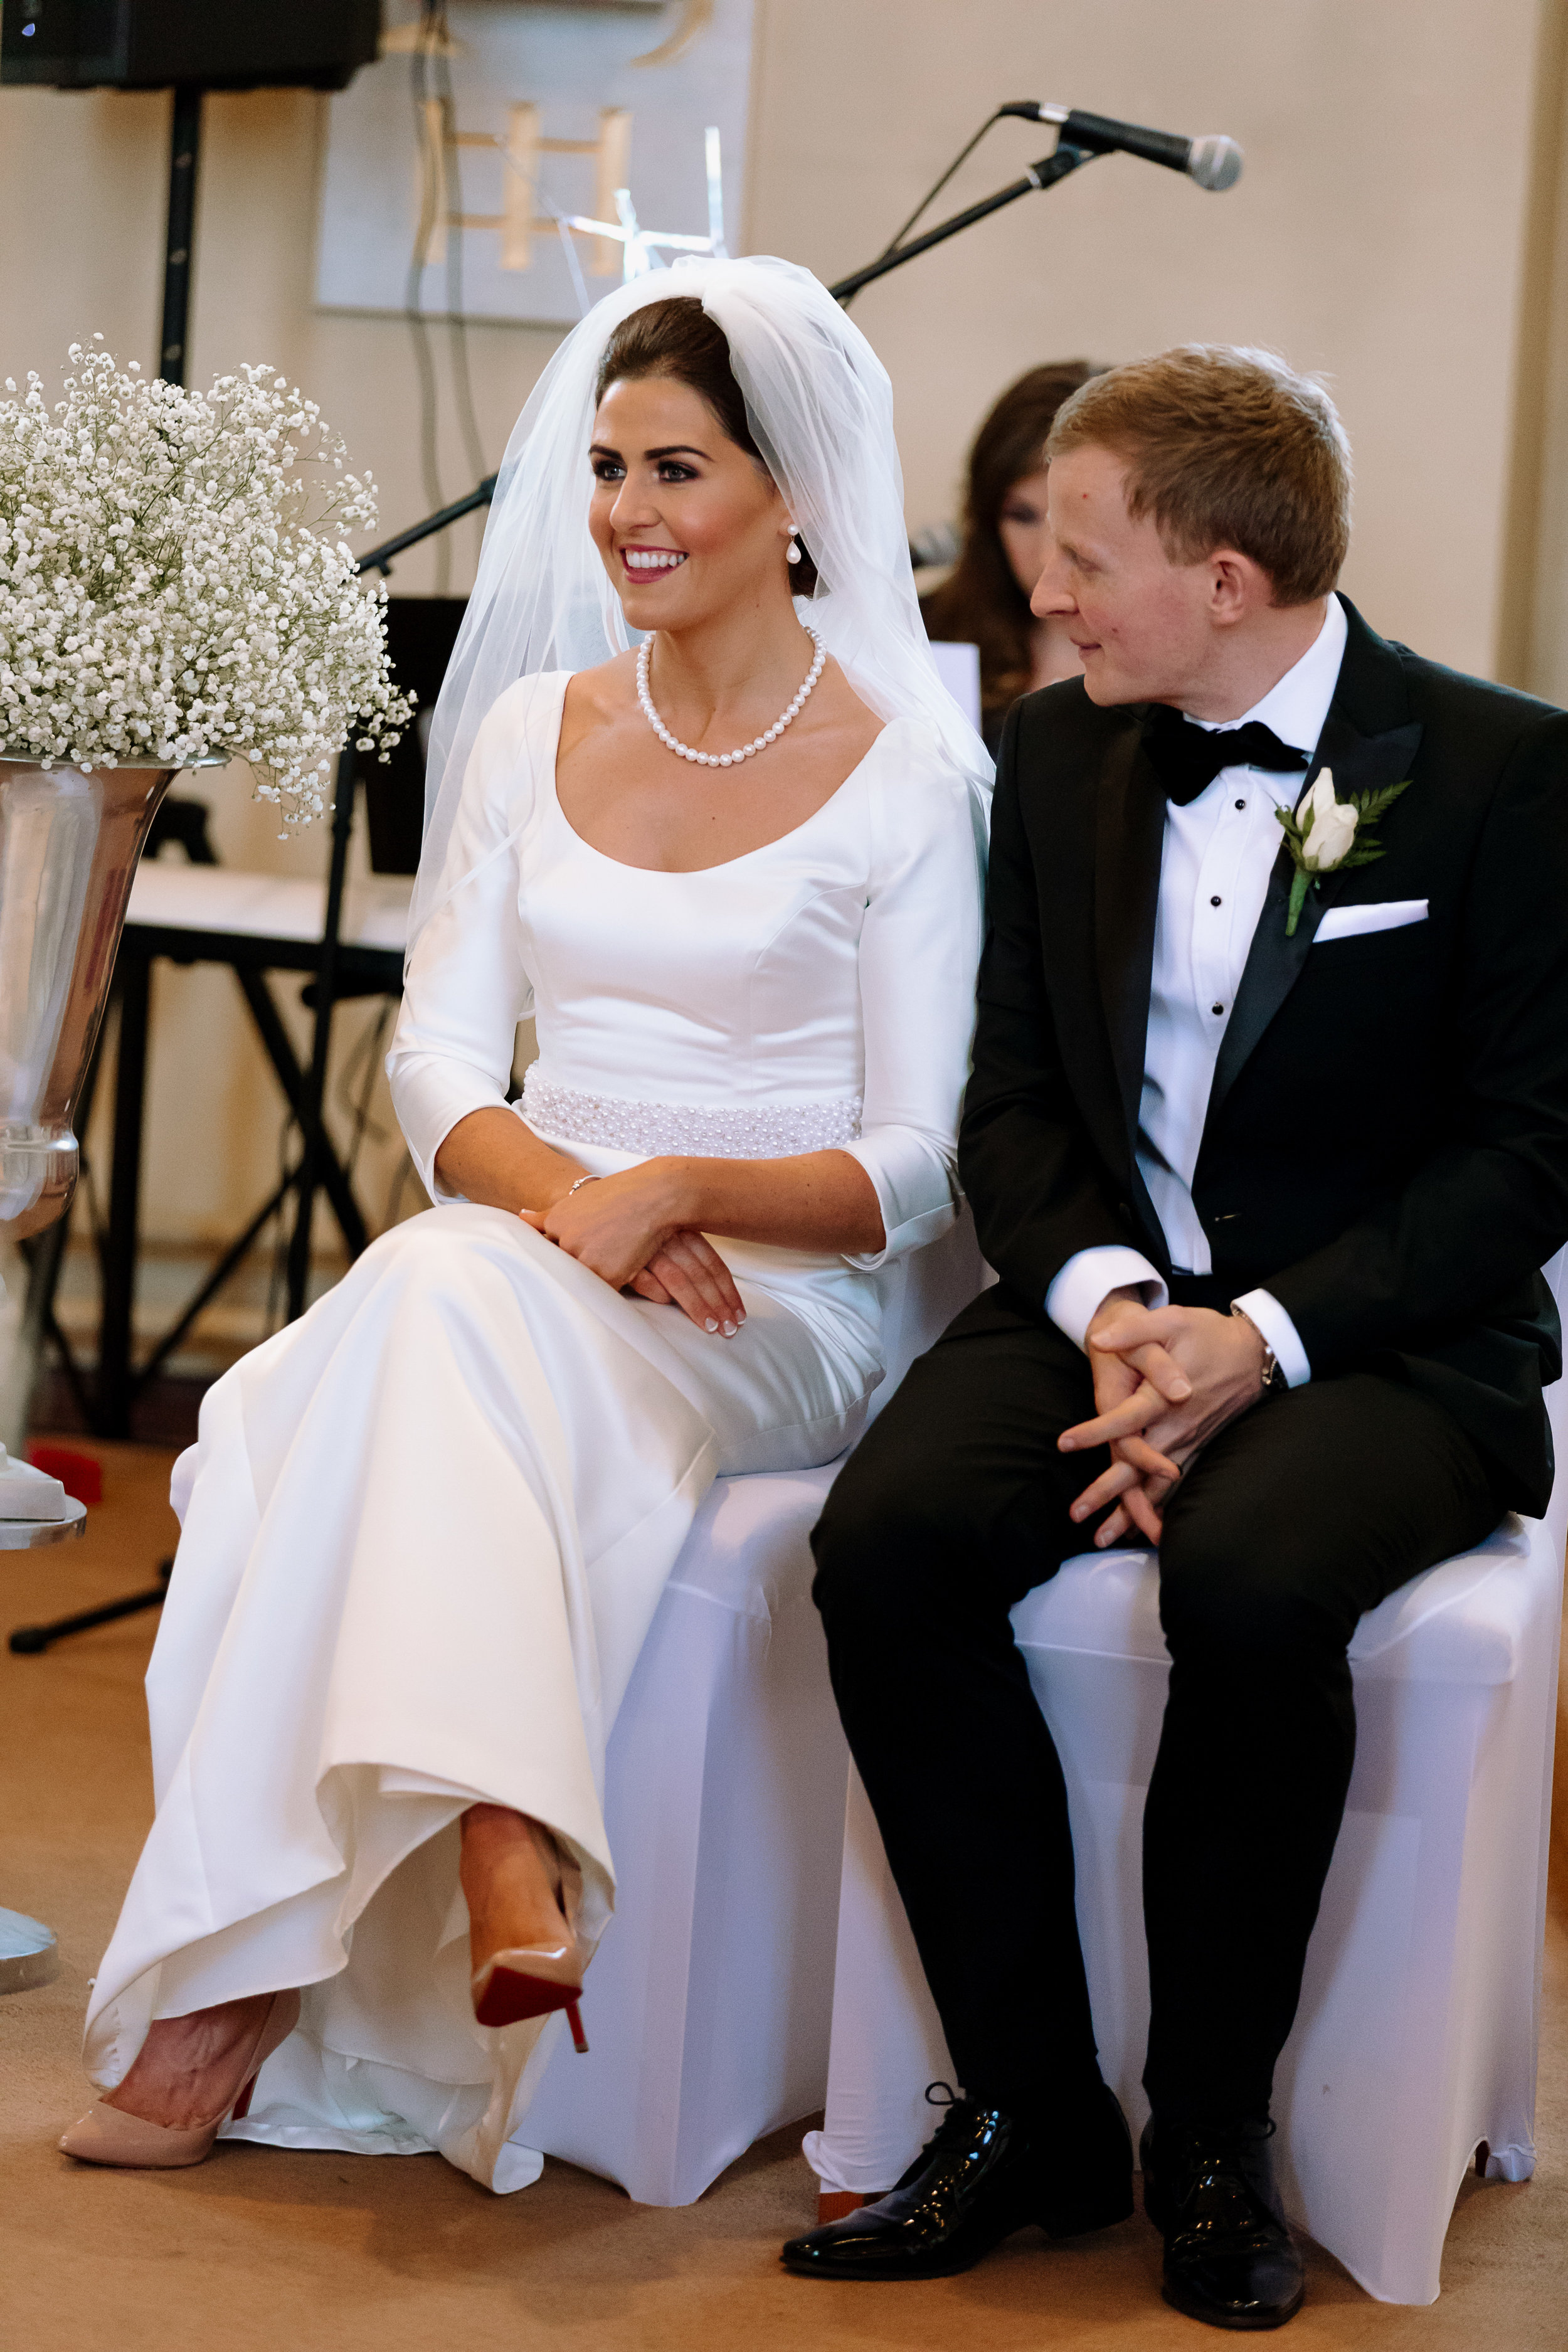 Louise and I also shared a love of shoes. She opted for the ever classic Christian Louboutins Nude for her big day. Setting her beautiful Jesus Peiro gown perfectly.